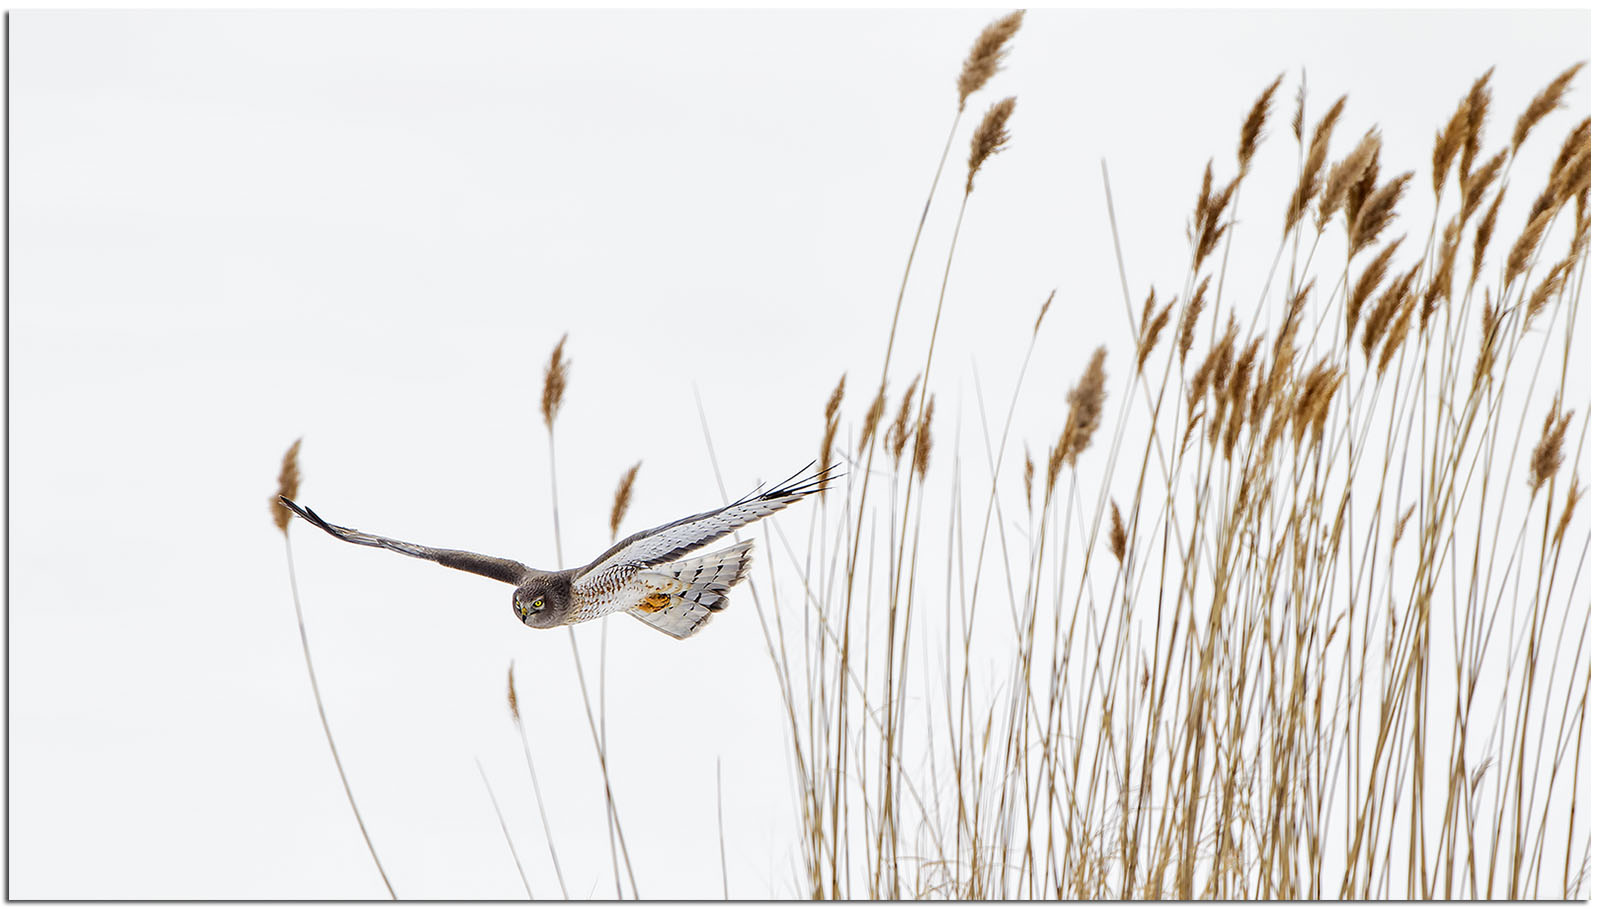 A Northern Harrier plans its next move. Photo by Phil Brown.